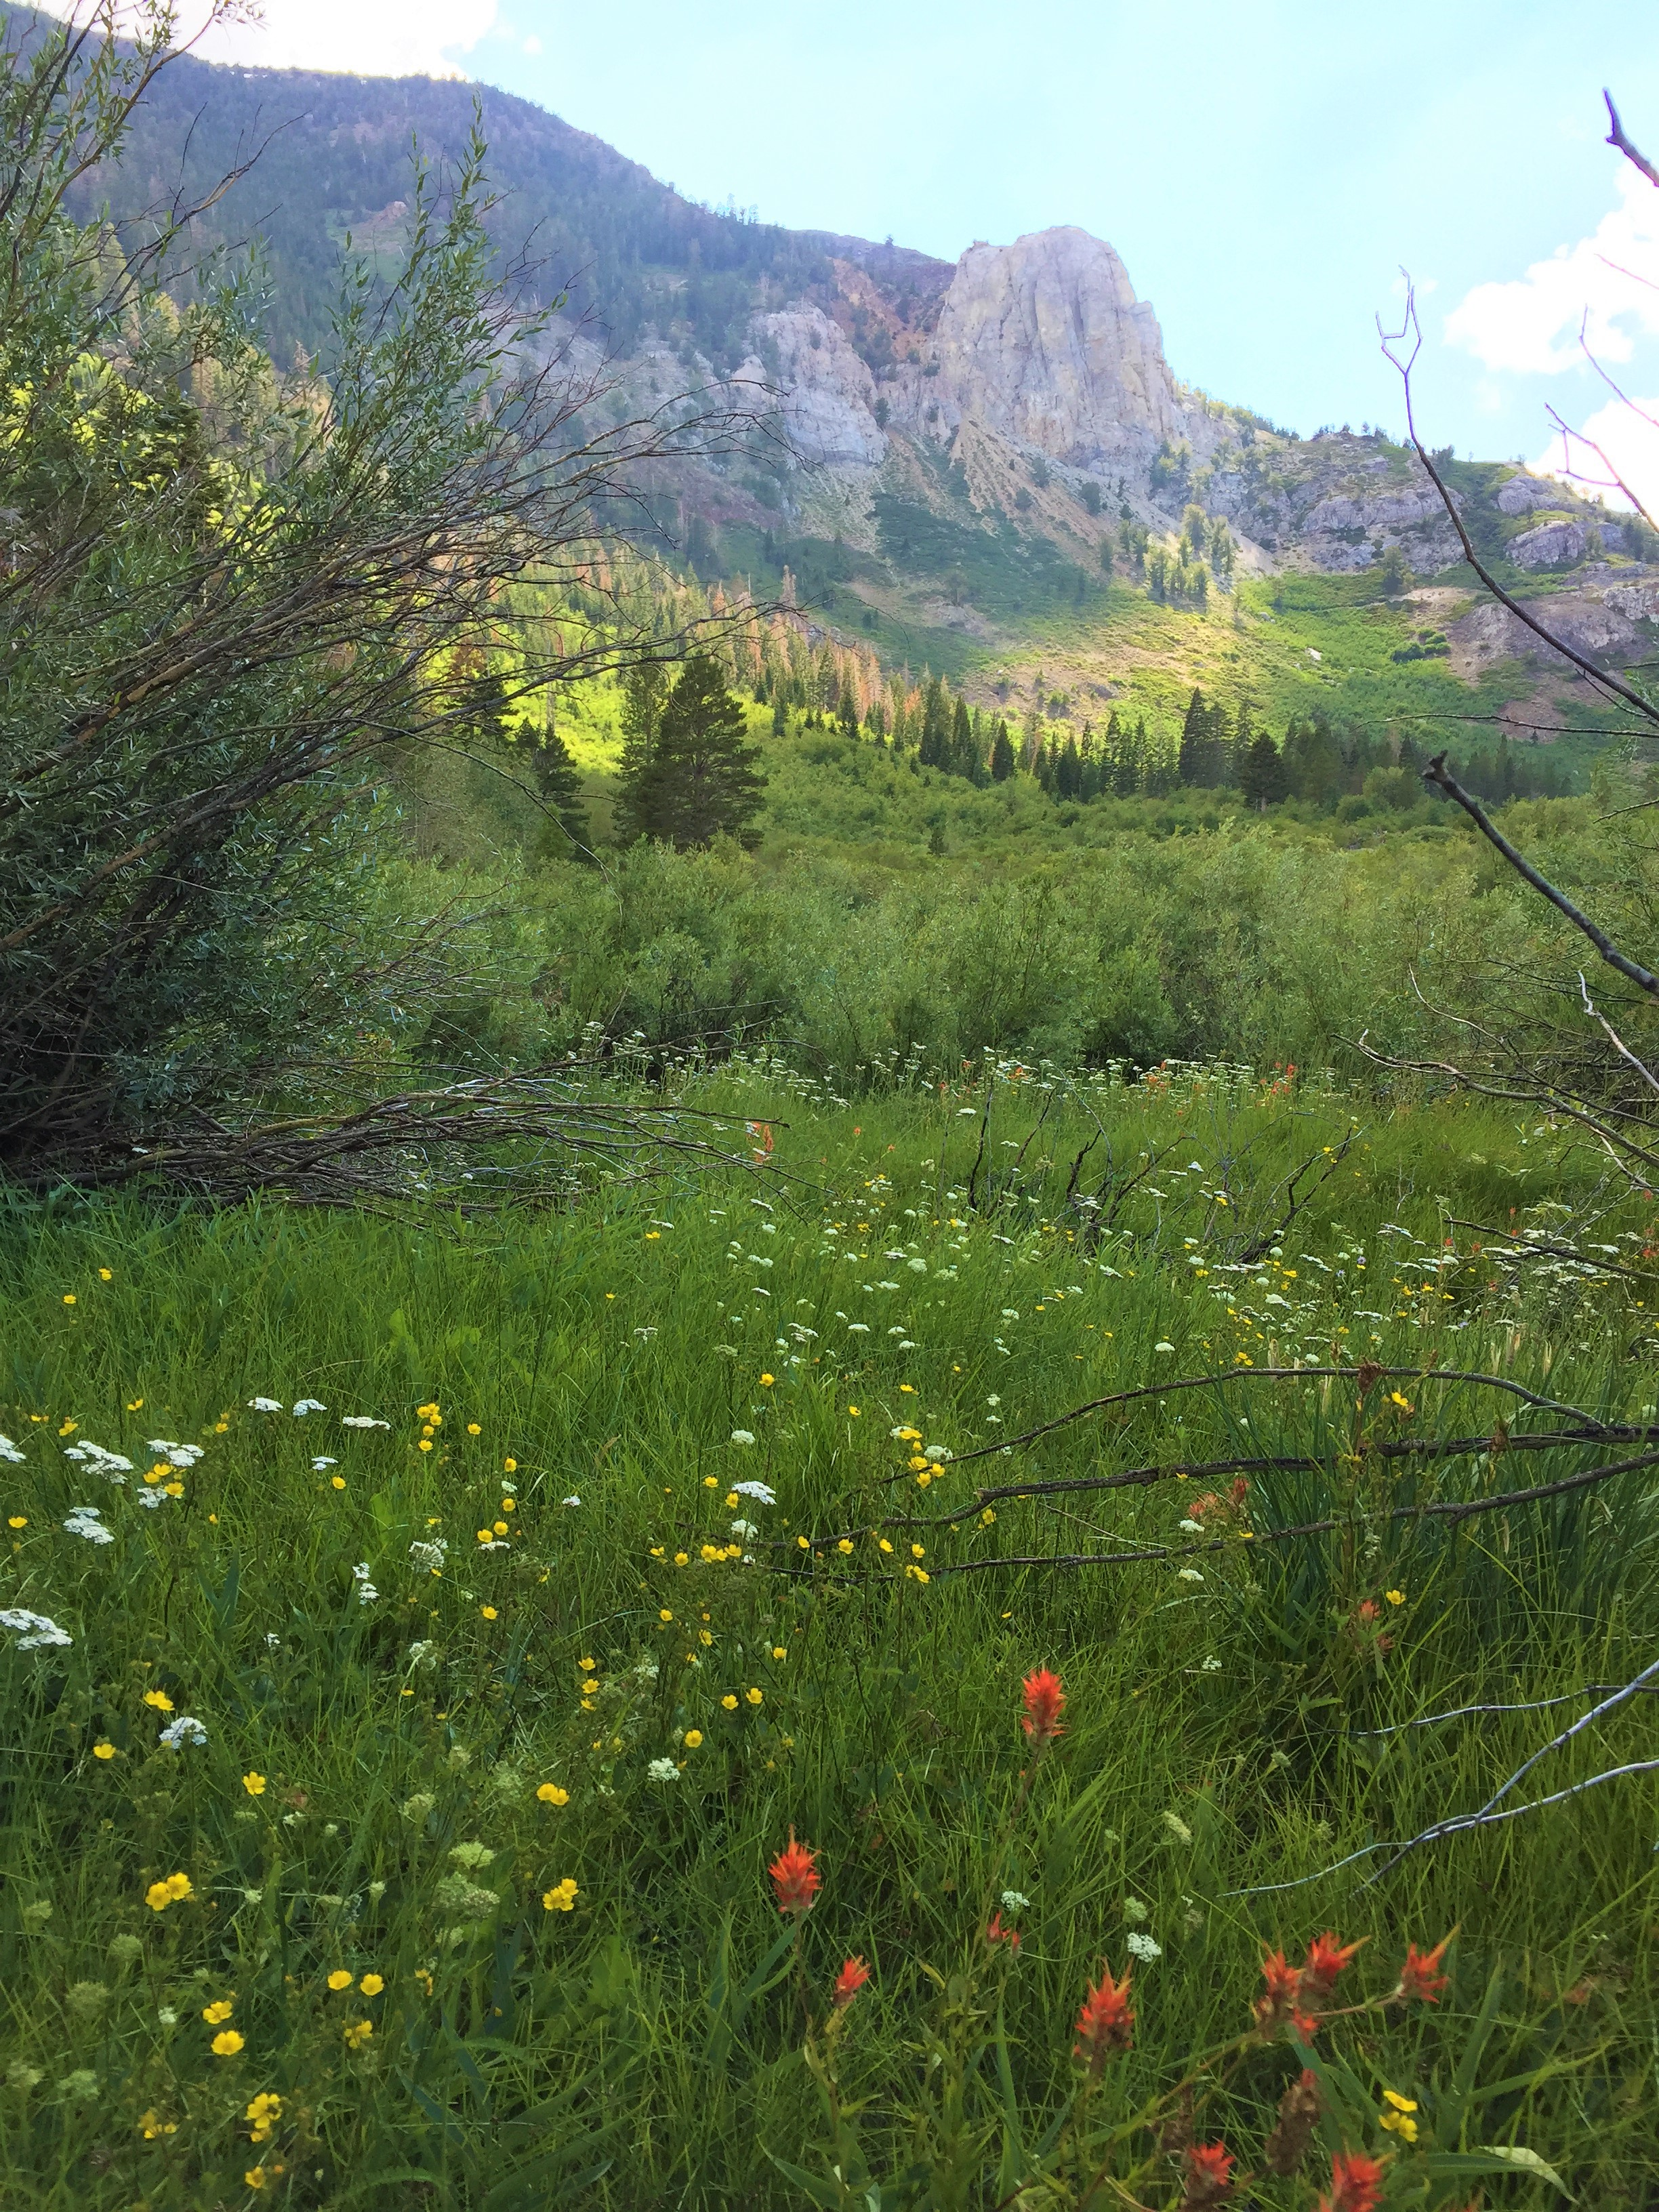 Snowcreek Meadow with Wildflowers and Mammoth Rock in Background